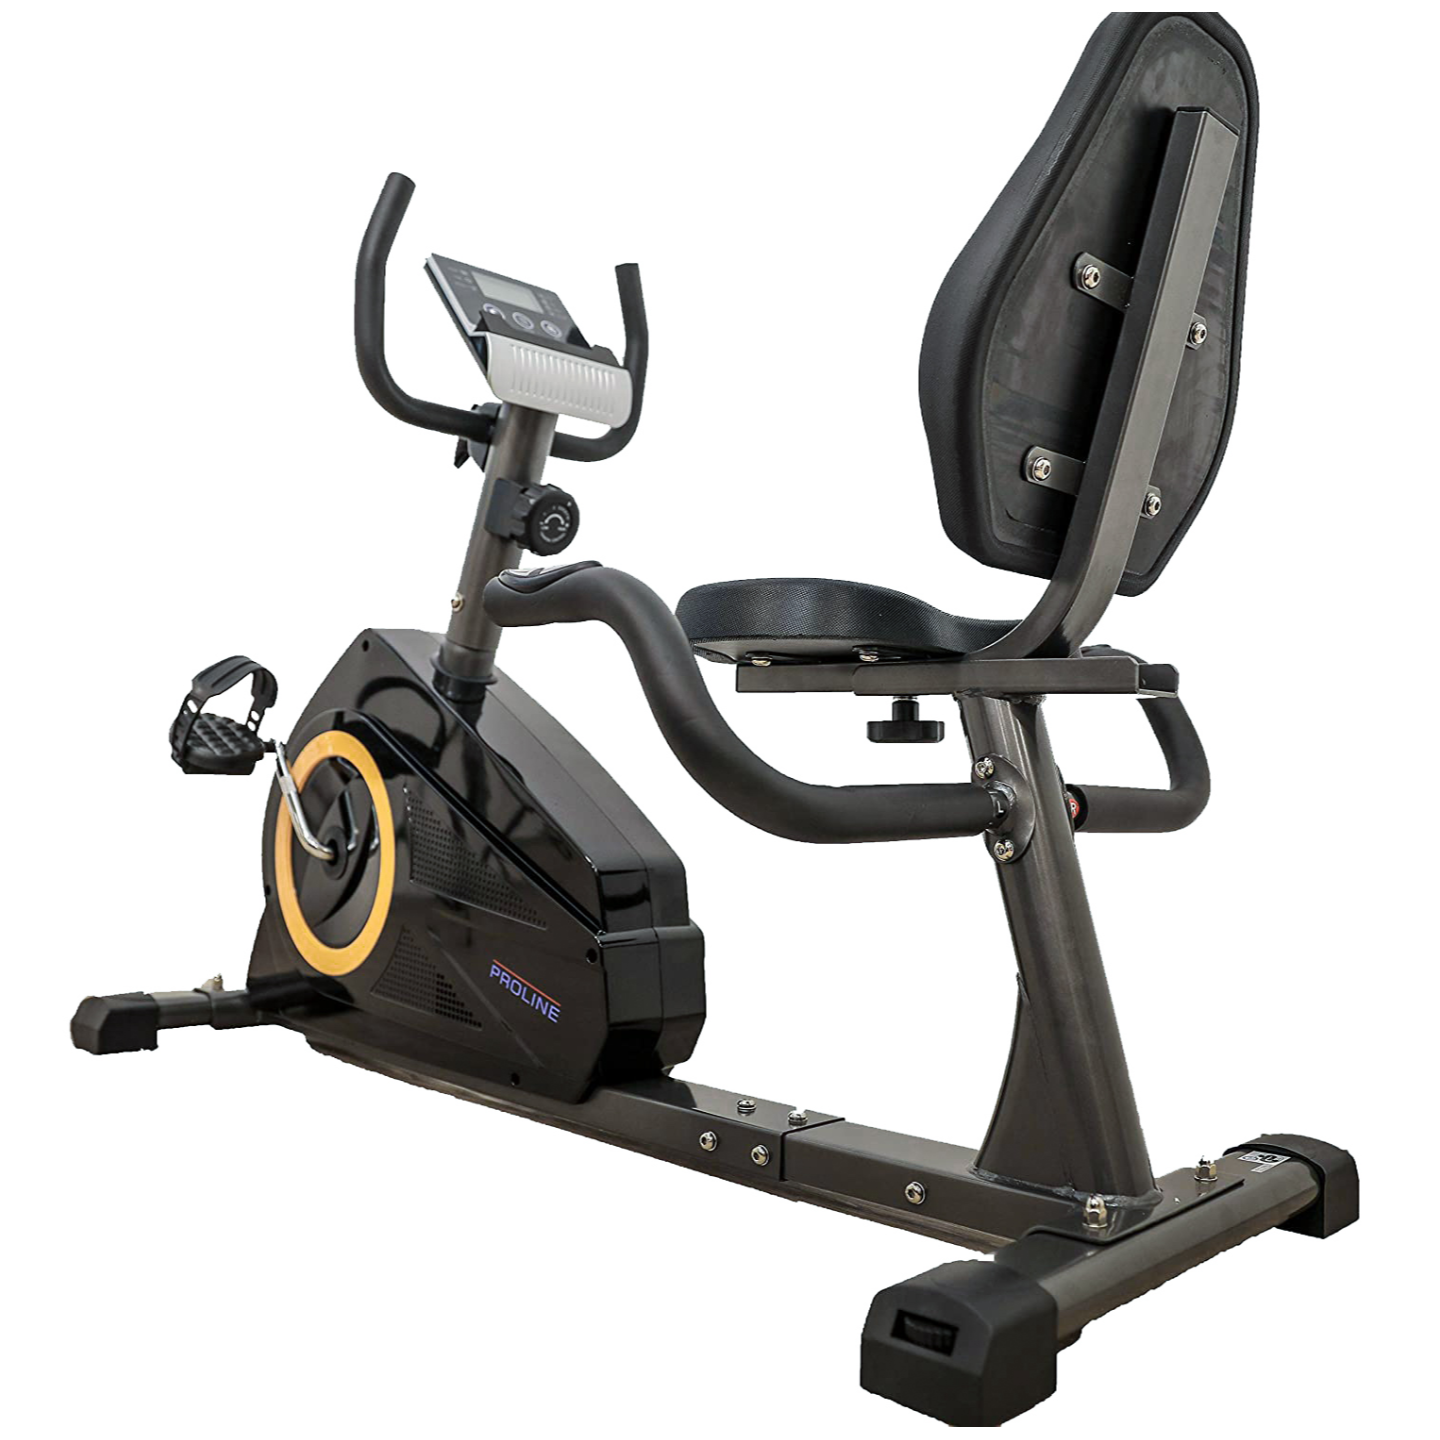 PROLINE 335L RECUMBENT BIKE